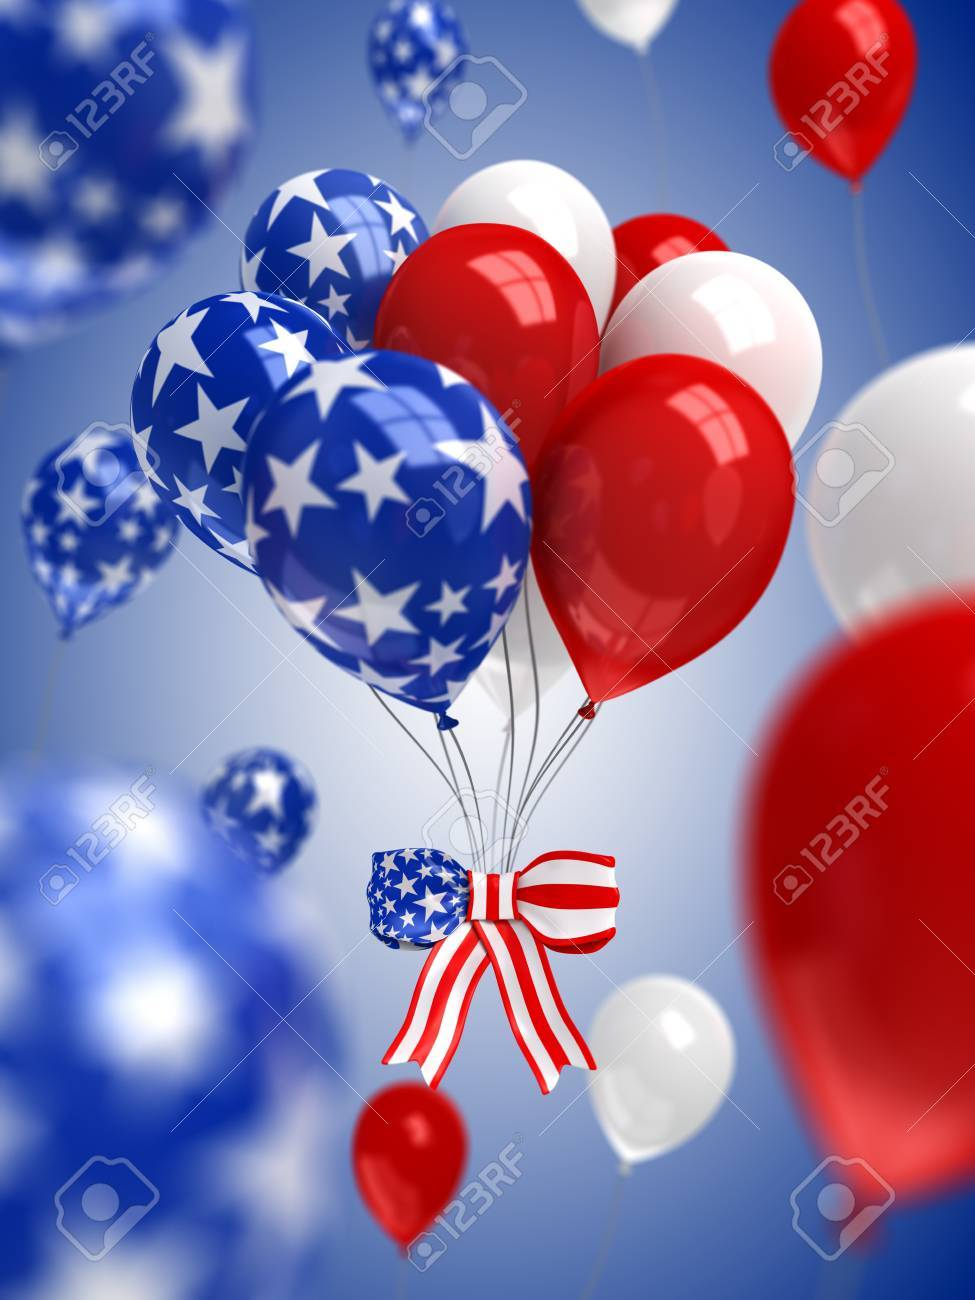 red white and blue balloons background stock photo picture and royalty free image image 78526442 red white and blue balloons background